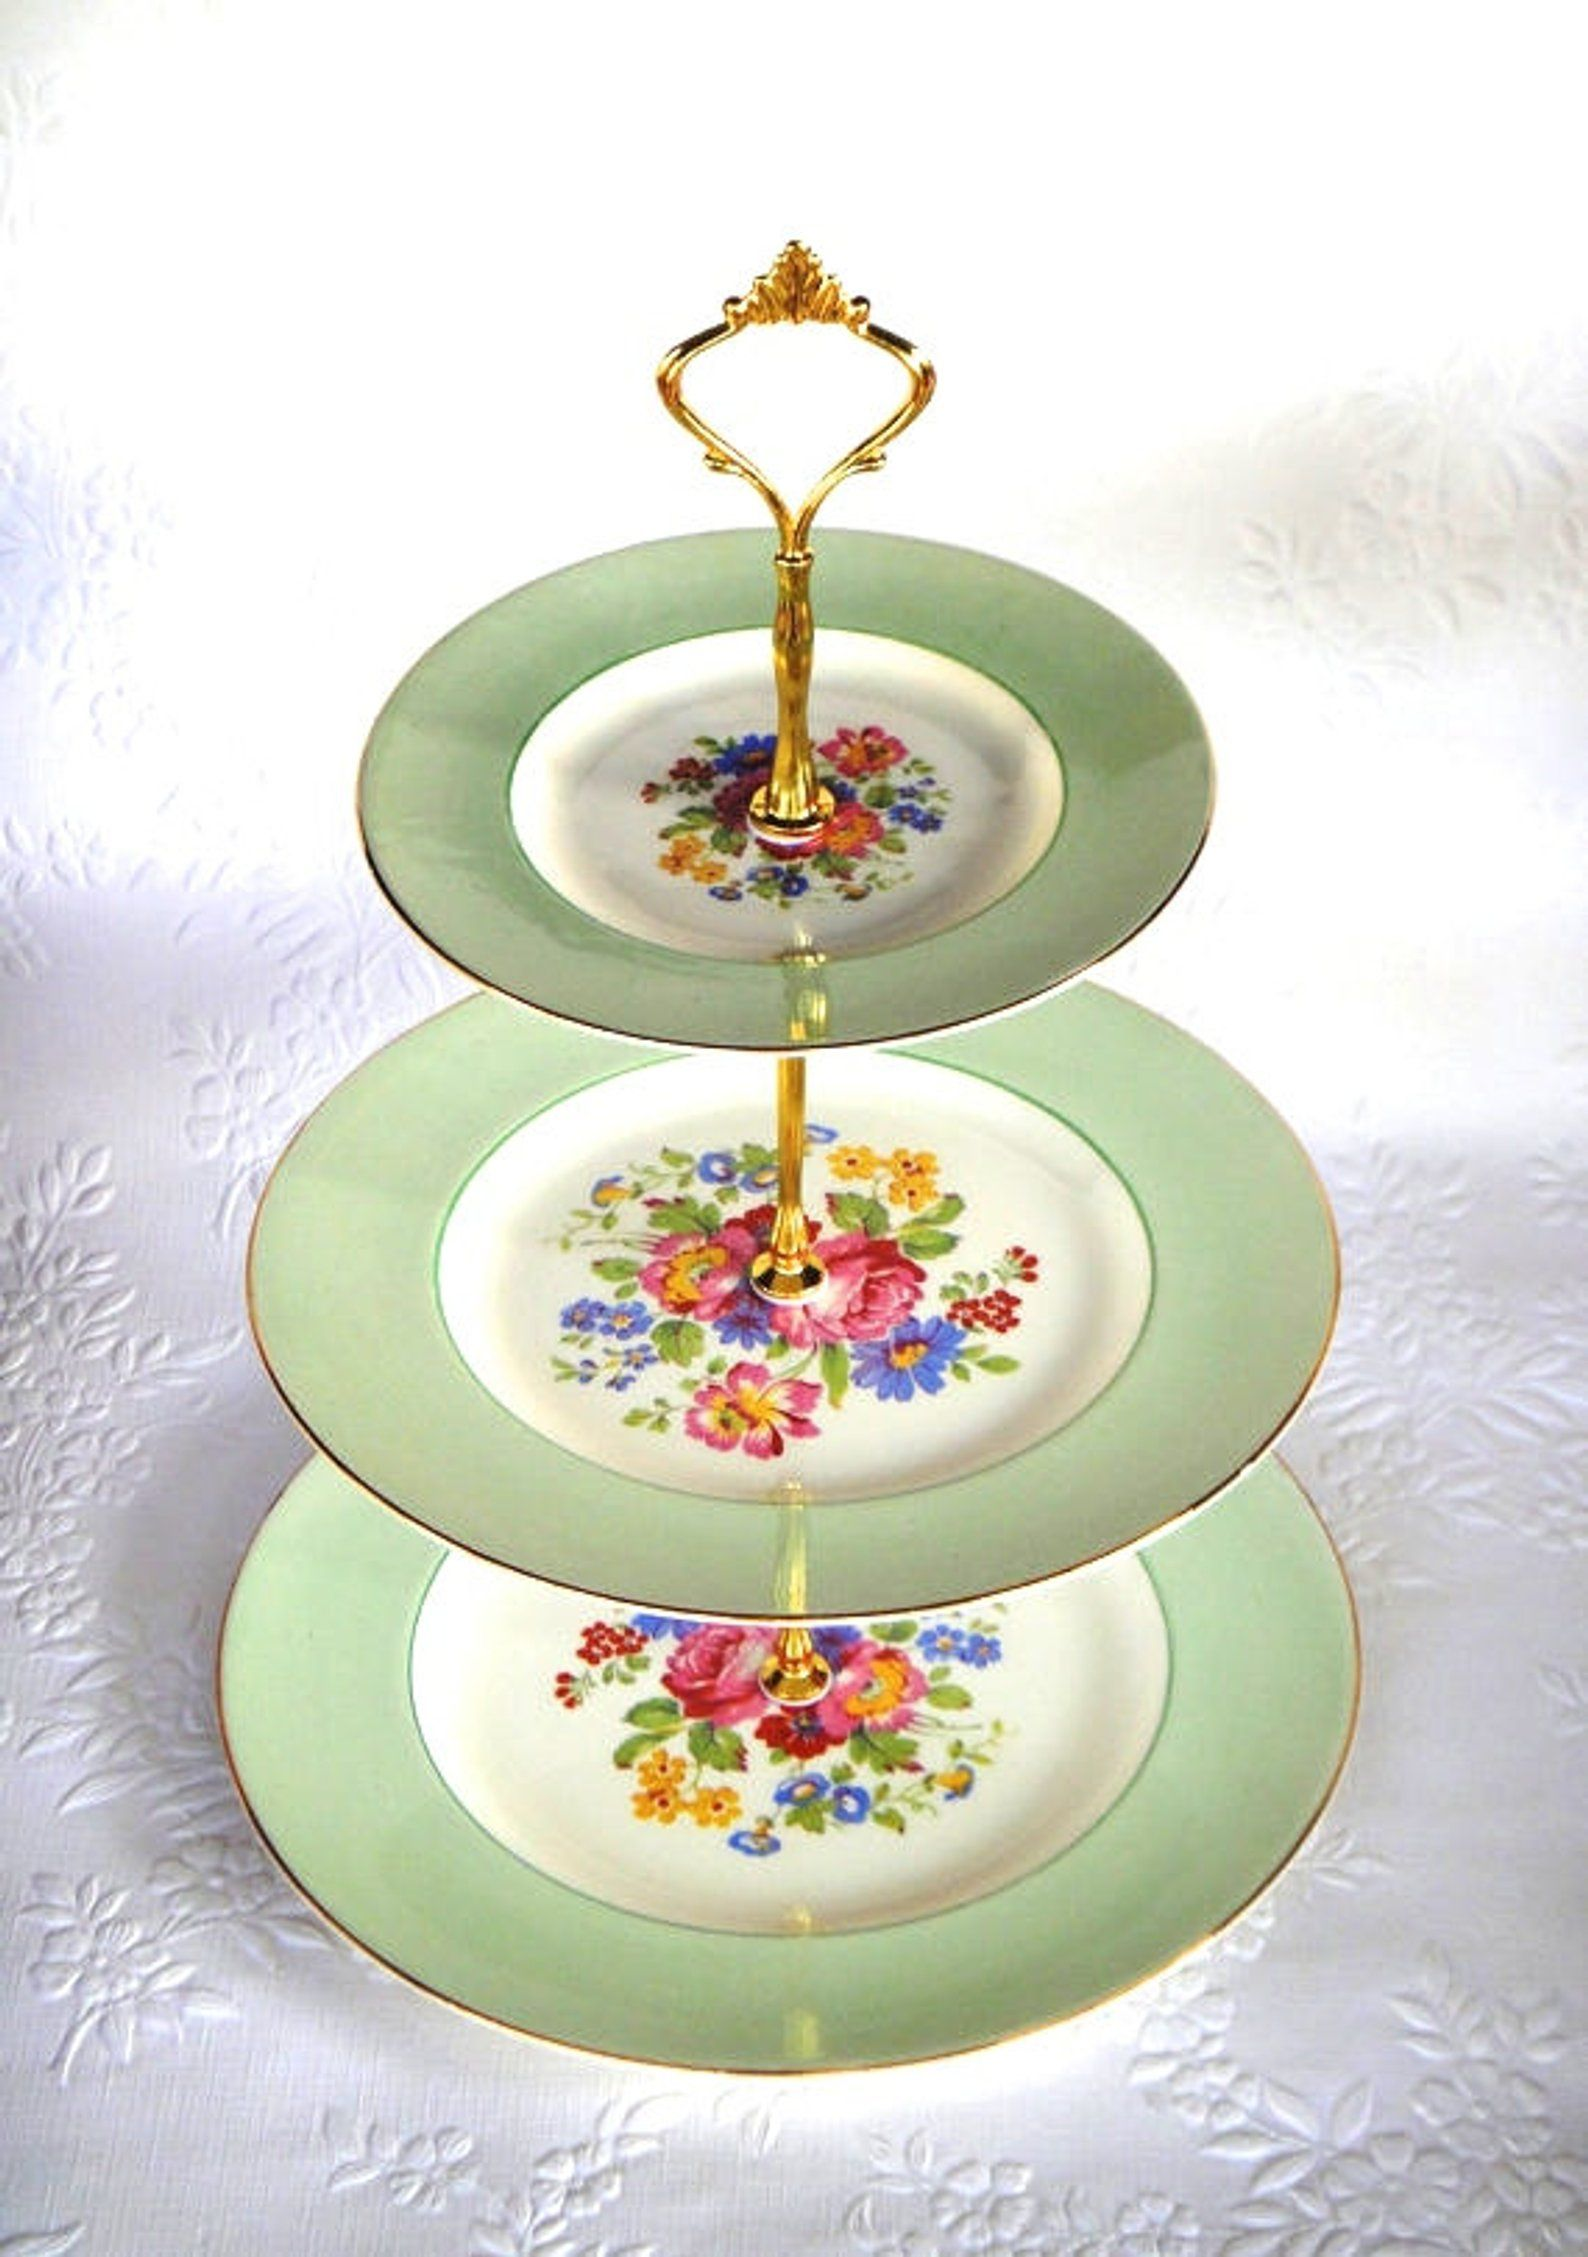 How To Make A Vintage 3 Tier Cup Cake Plate Wedding Stand Diy Kit Instructions Drill Bit Heavy Crown Handle Fitting Hardware Cake Plates Vintage Cake Stands Tiered Cake Stands